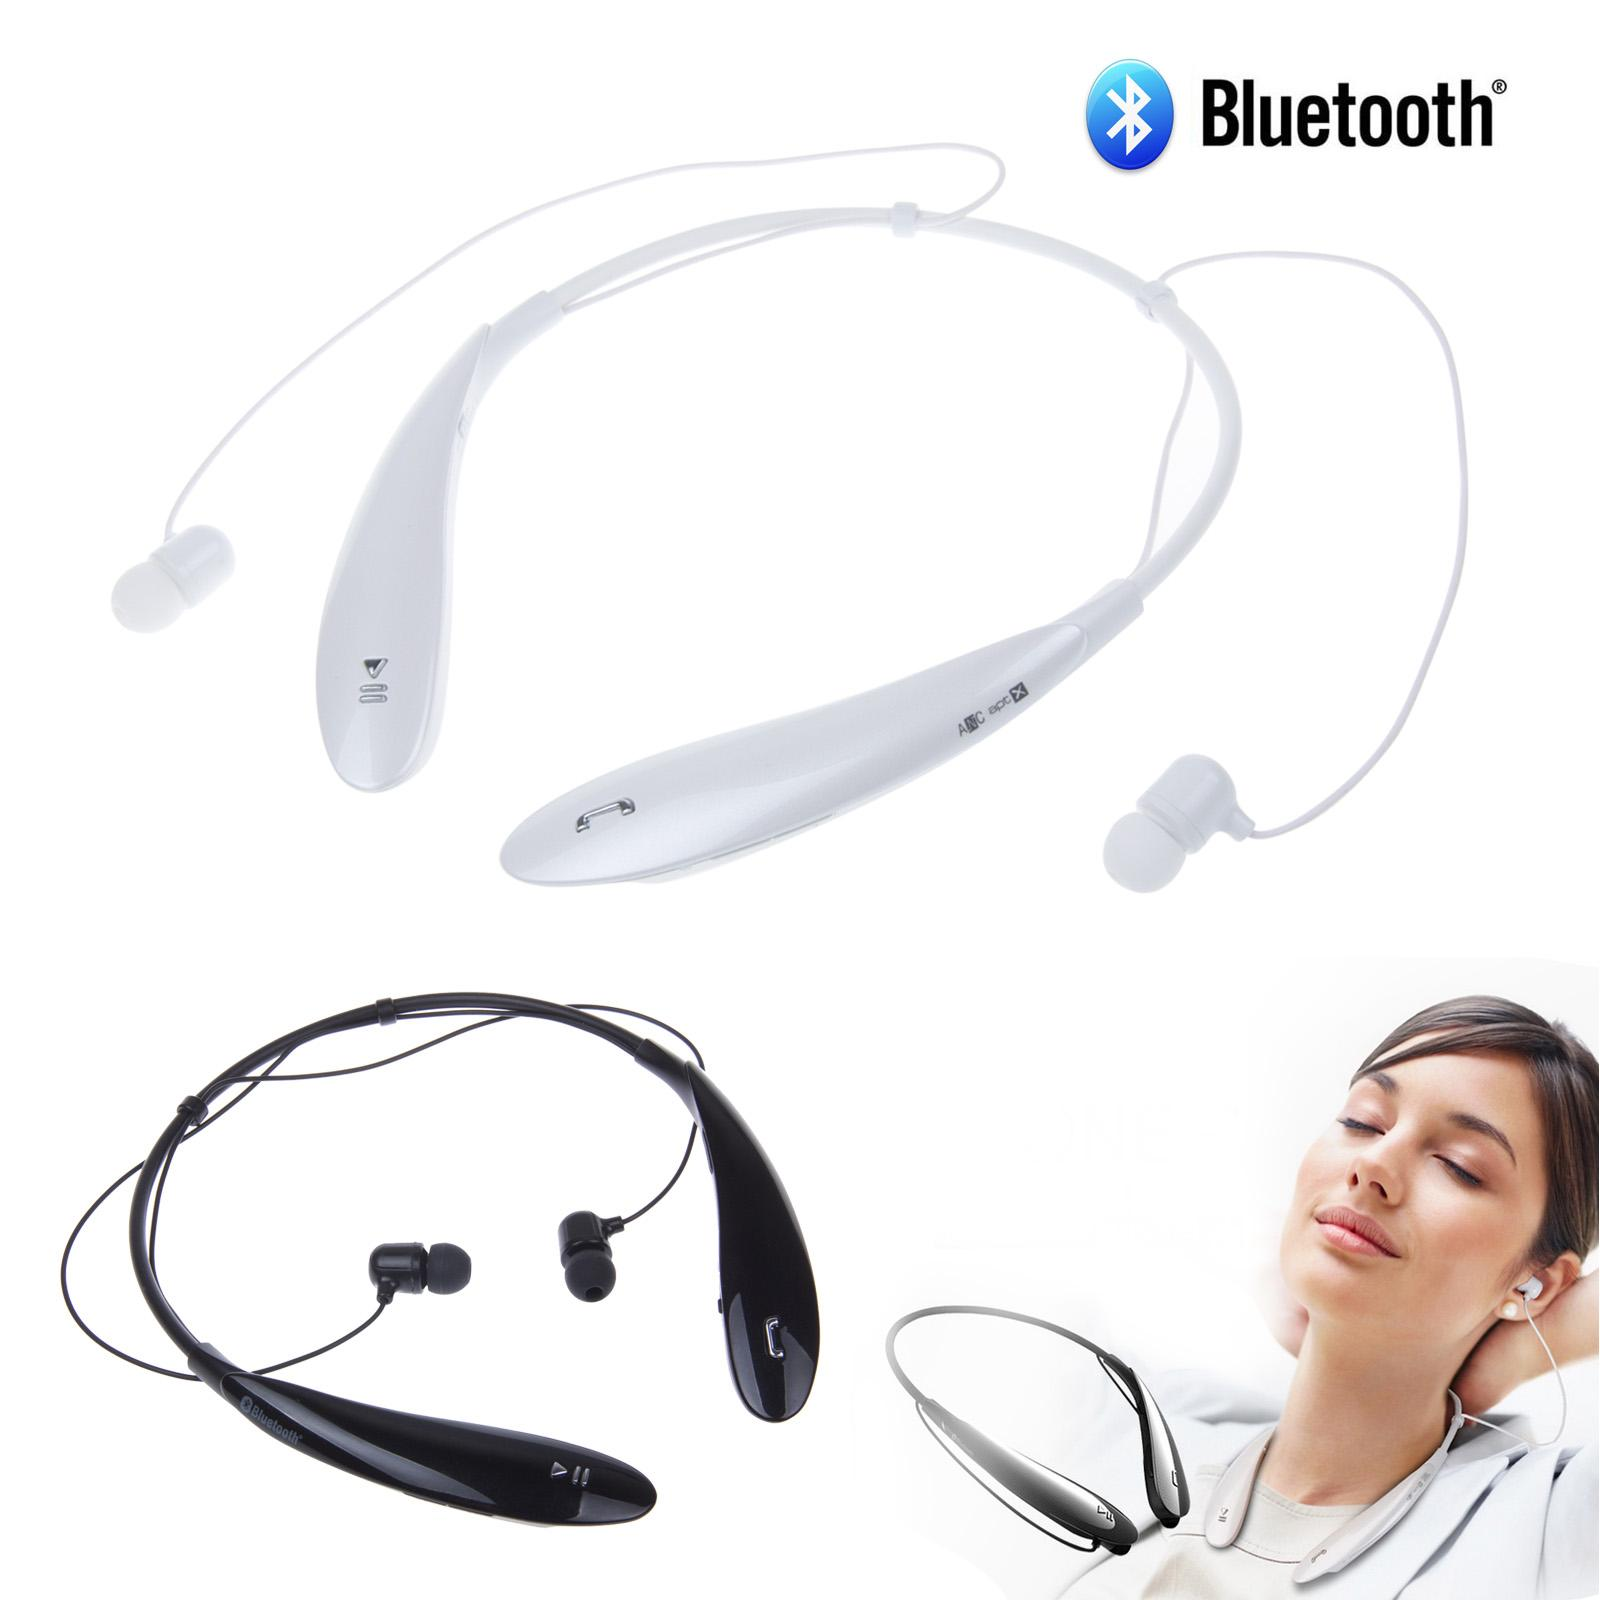 hb 800s hbs 800 wireless bluetooth 4 0 stereo headset earphone for iphone 6 plus 5s 4s 6. Black Bedroom Furniture Sets. Home Design Ideas